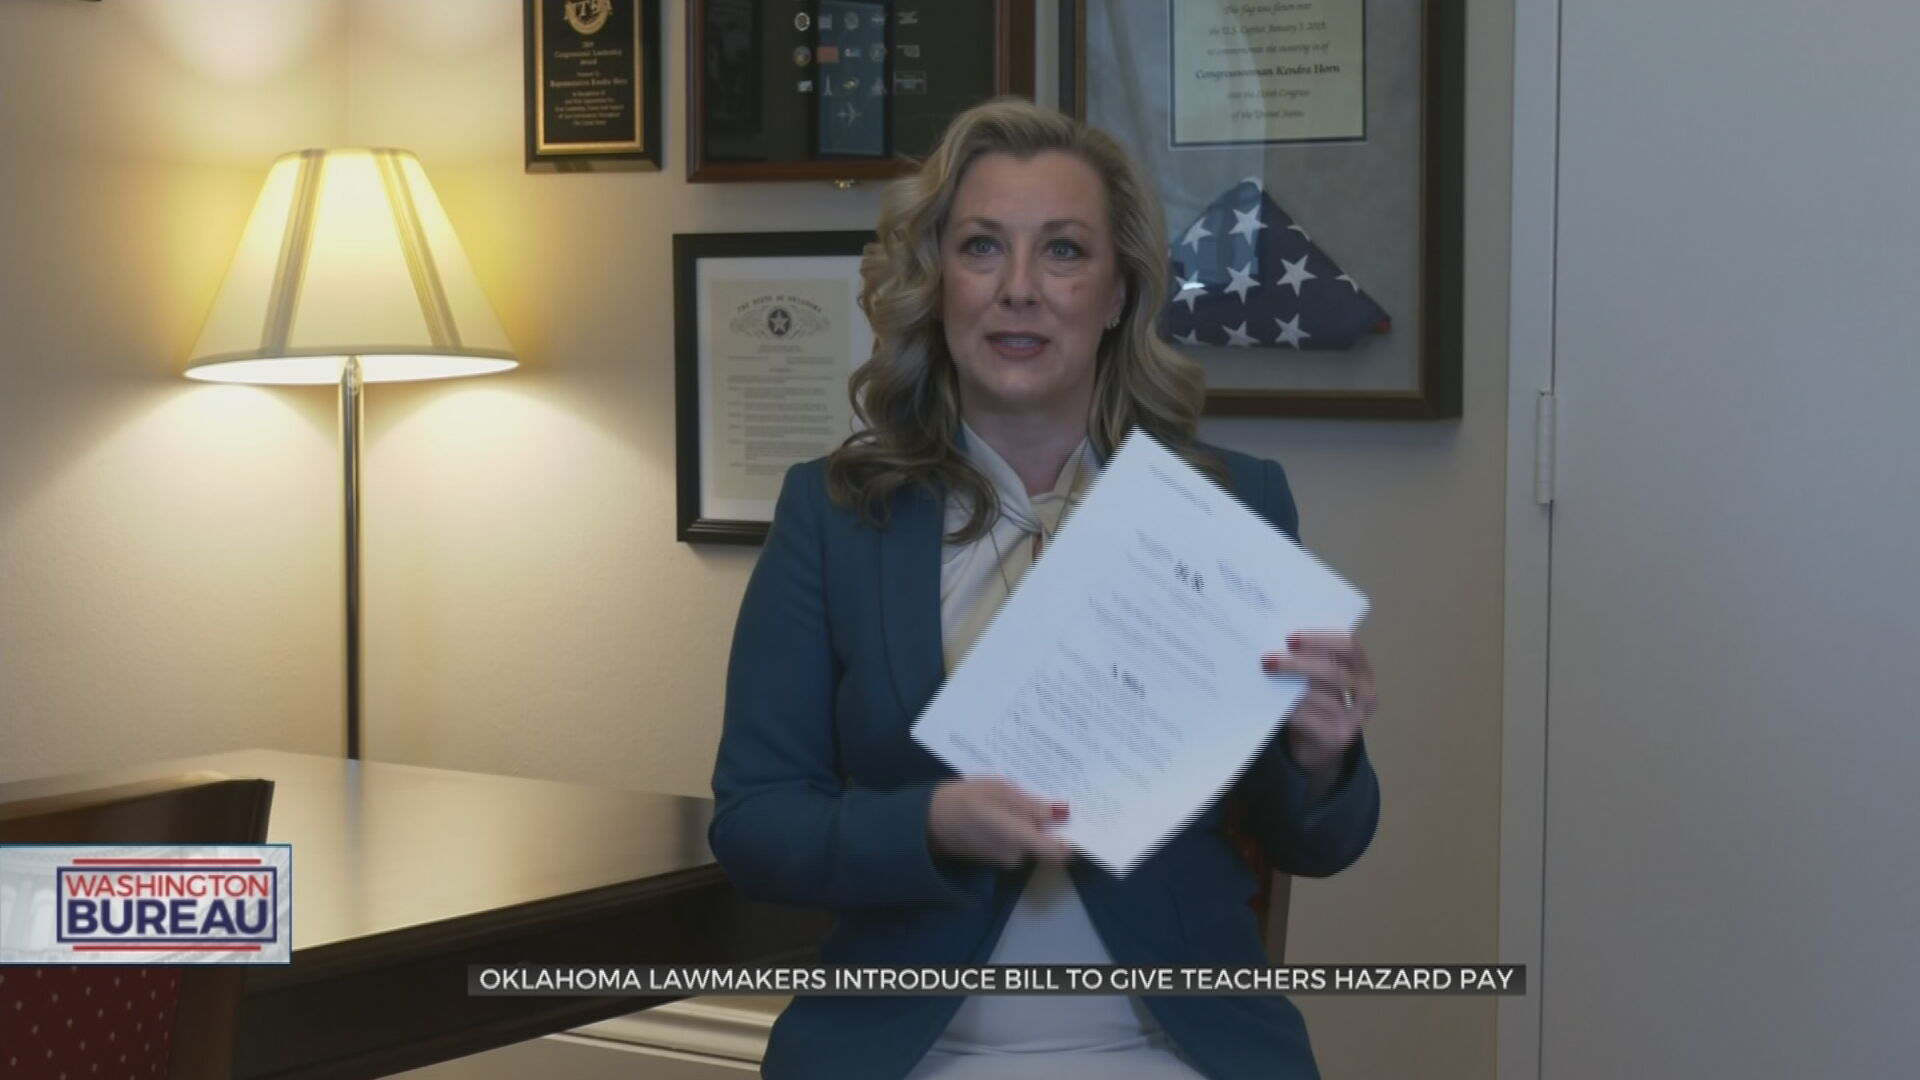 Oklahoma Lawmaker Introduces Congressional Bill To Give Teachers Hazard Pay